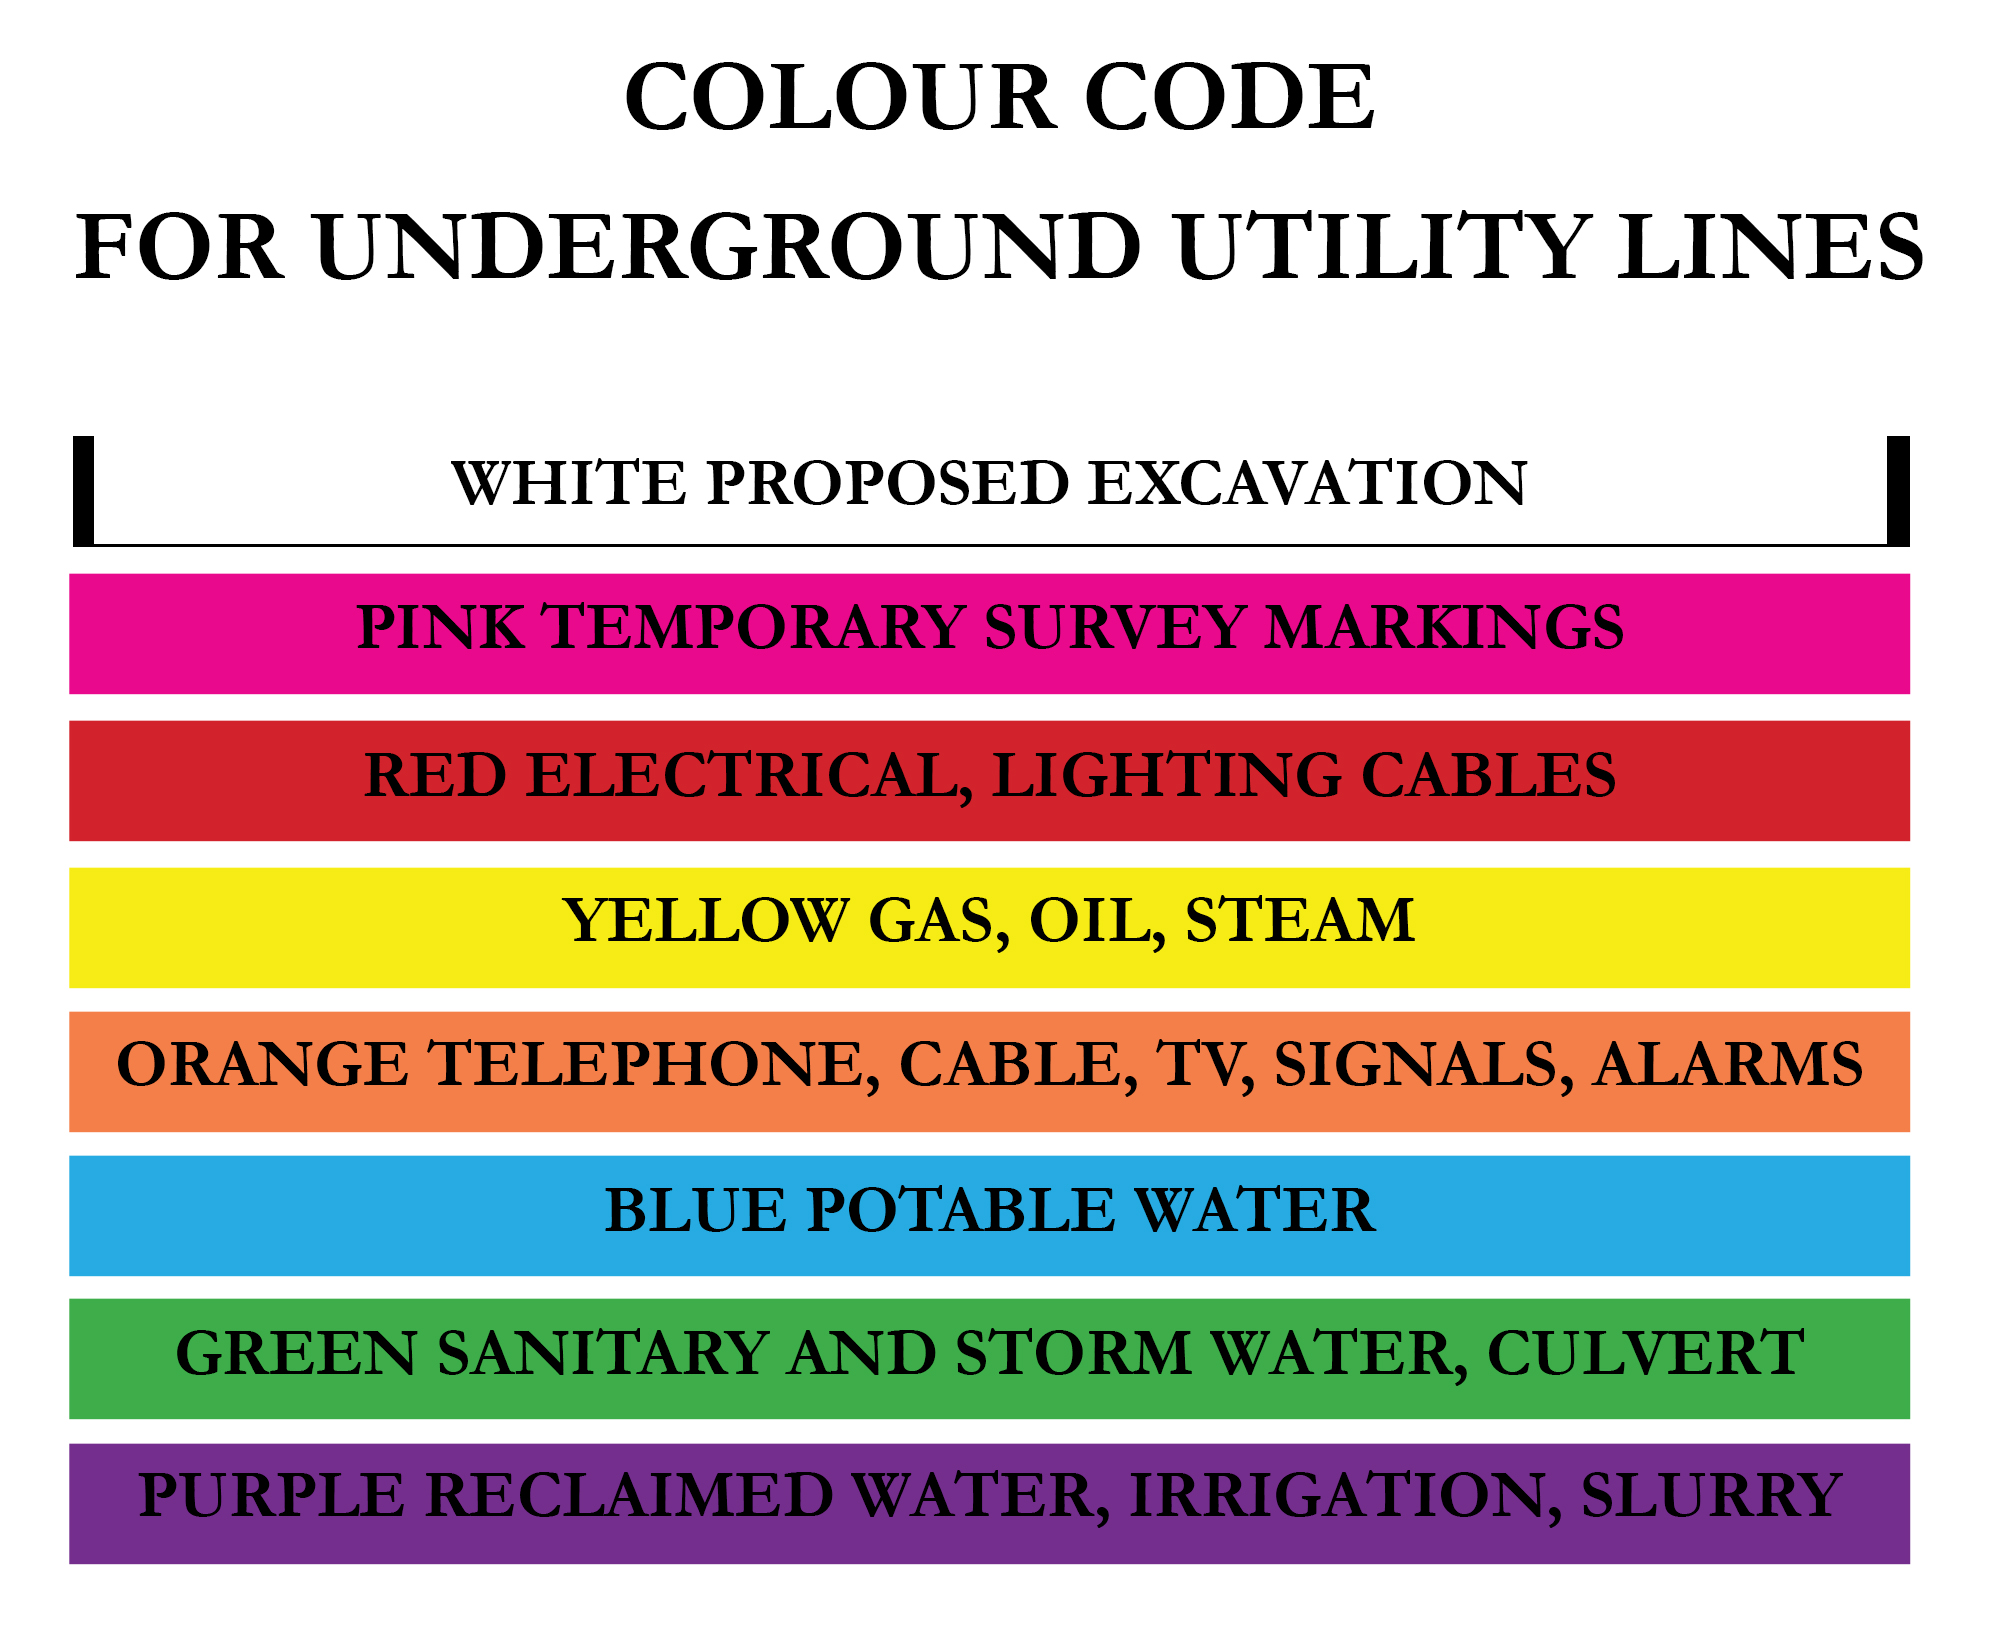 Image of Colour Code for construction safety and oilfield safety.